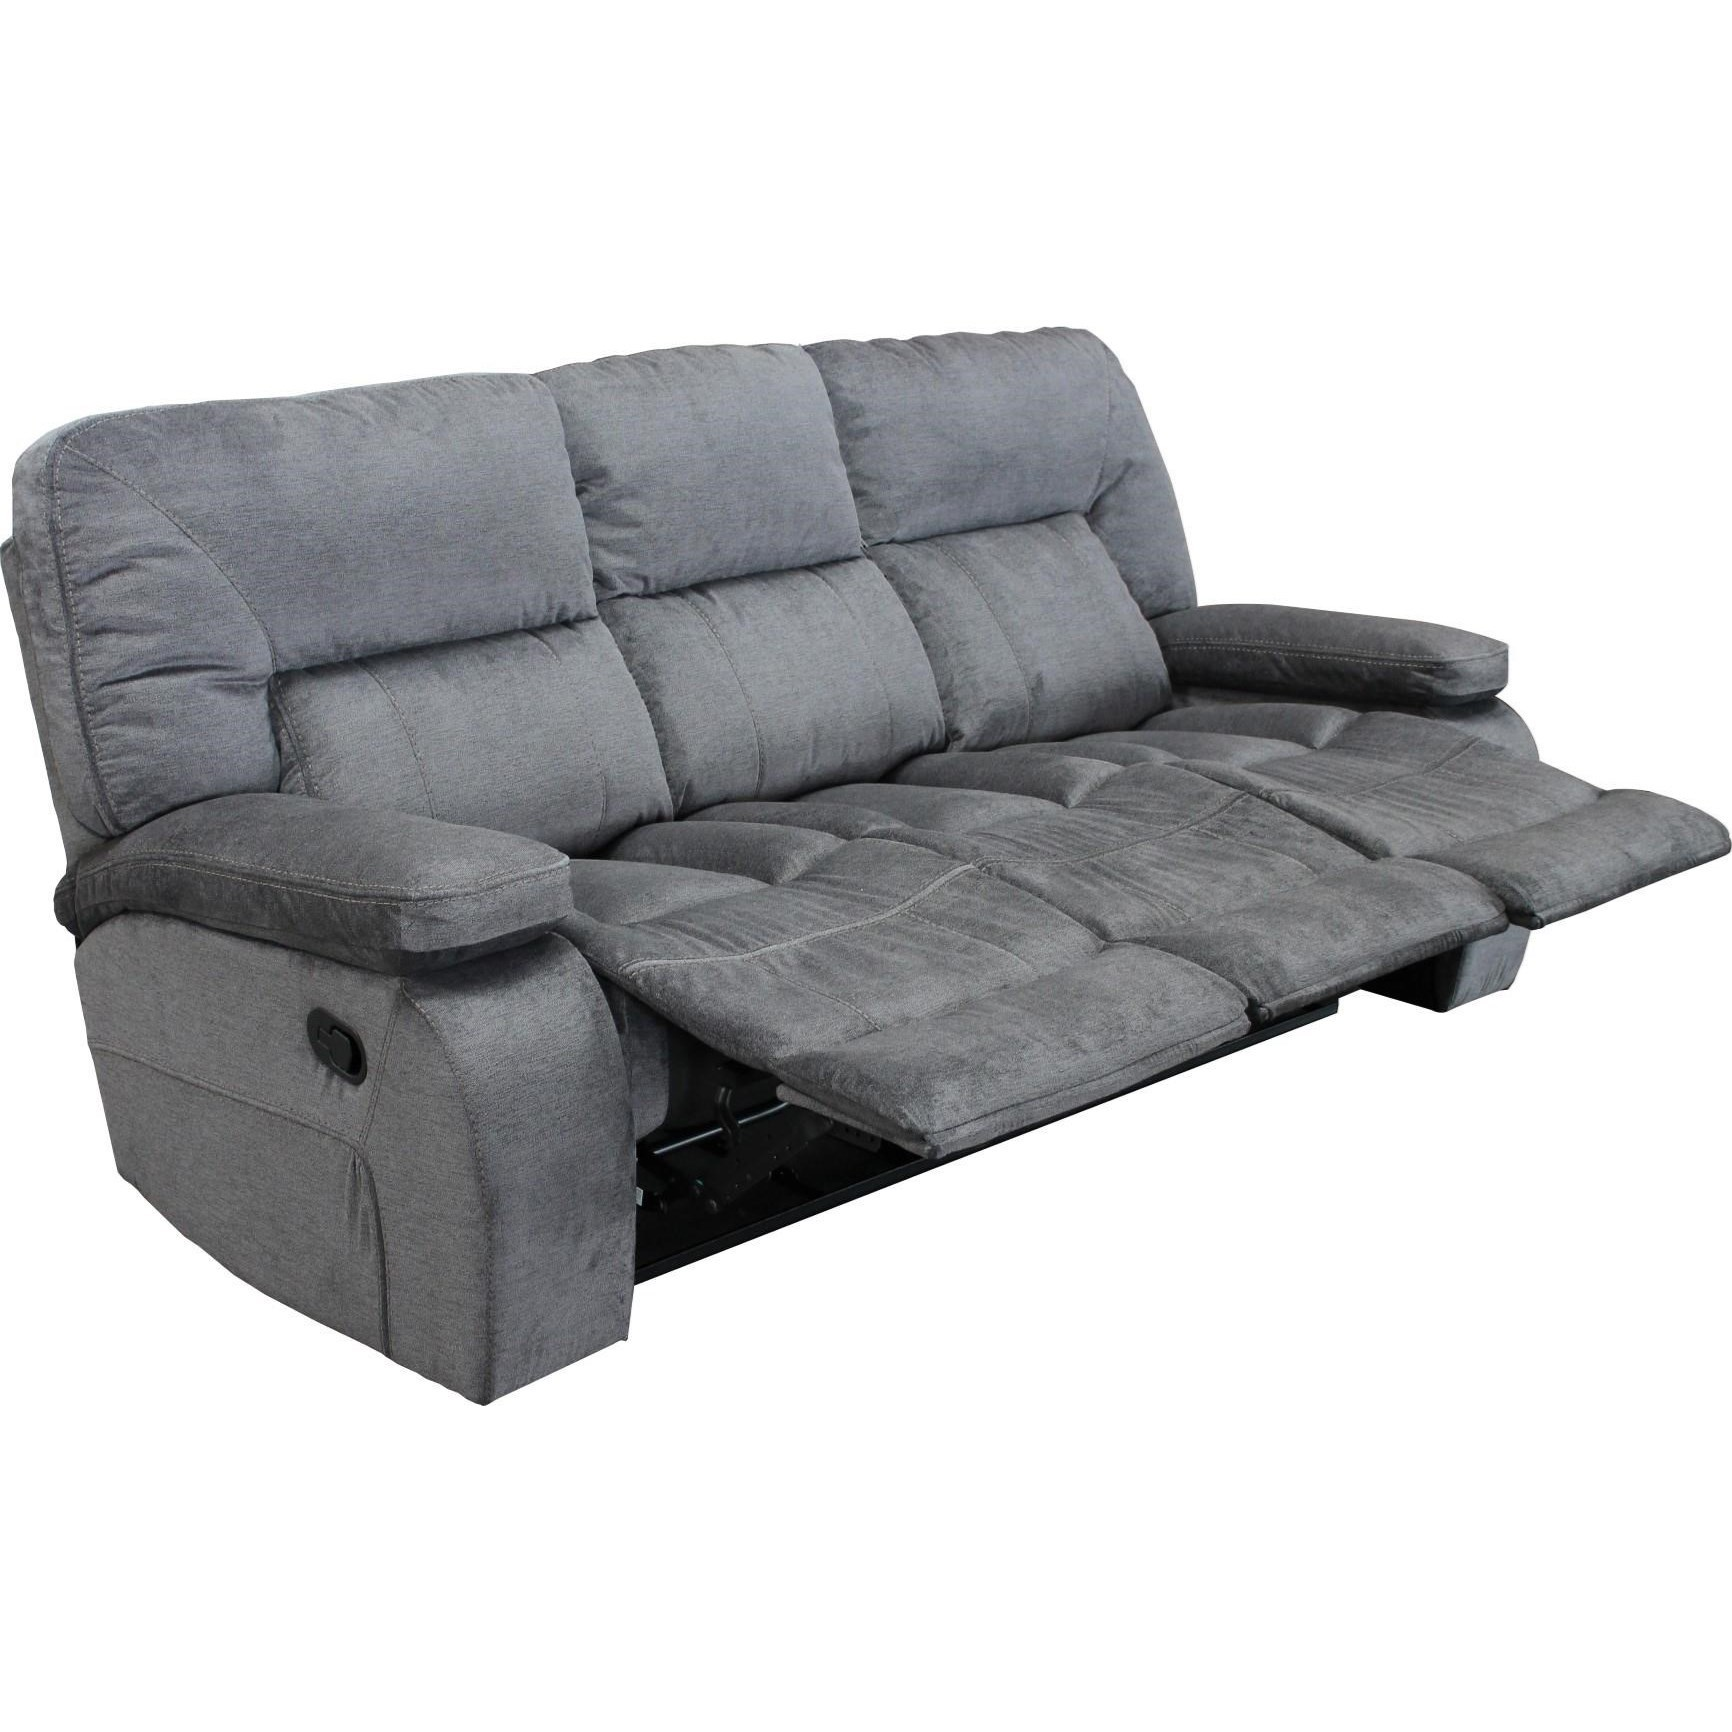 triple reclining sofa marshmallow furniture flip open canada parker living chapman casual with